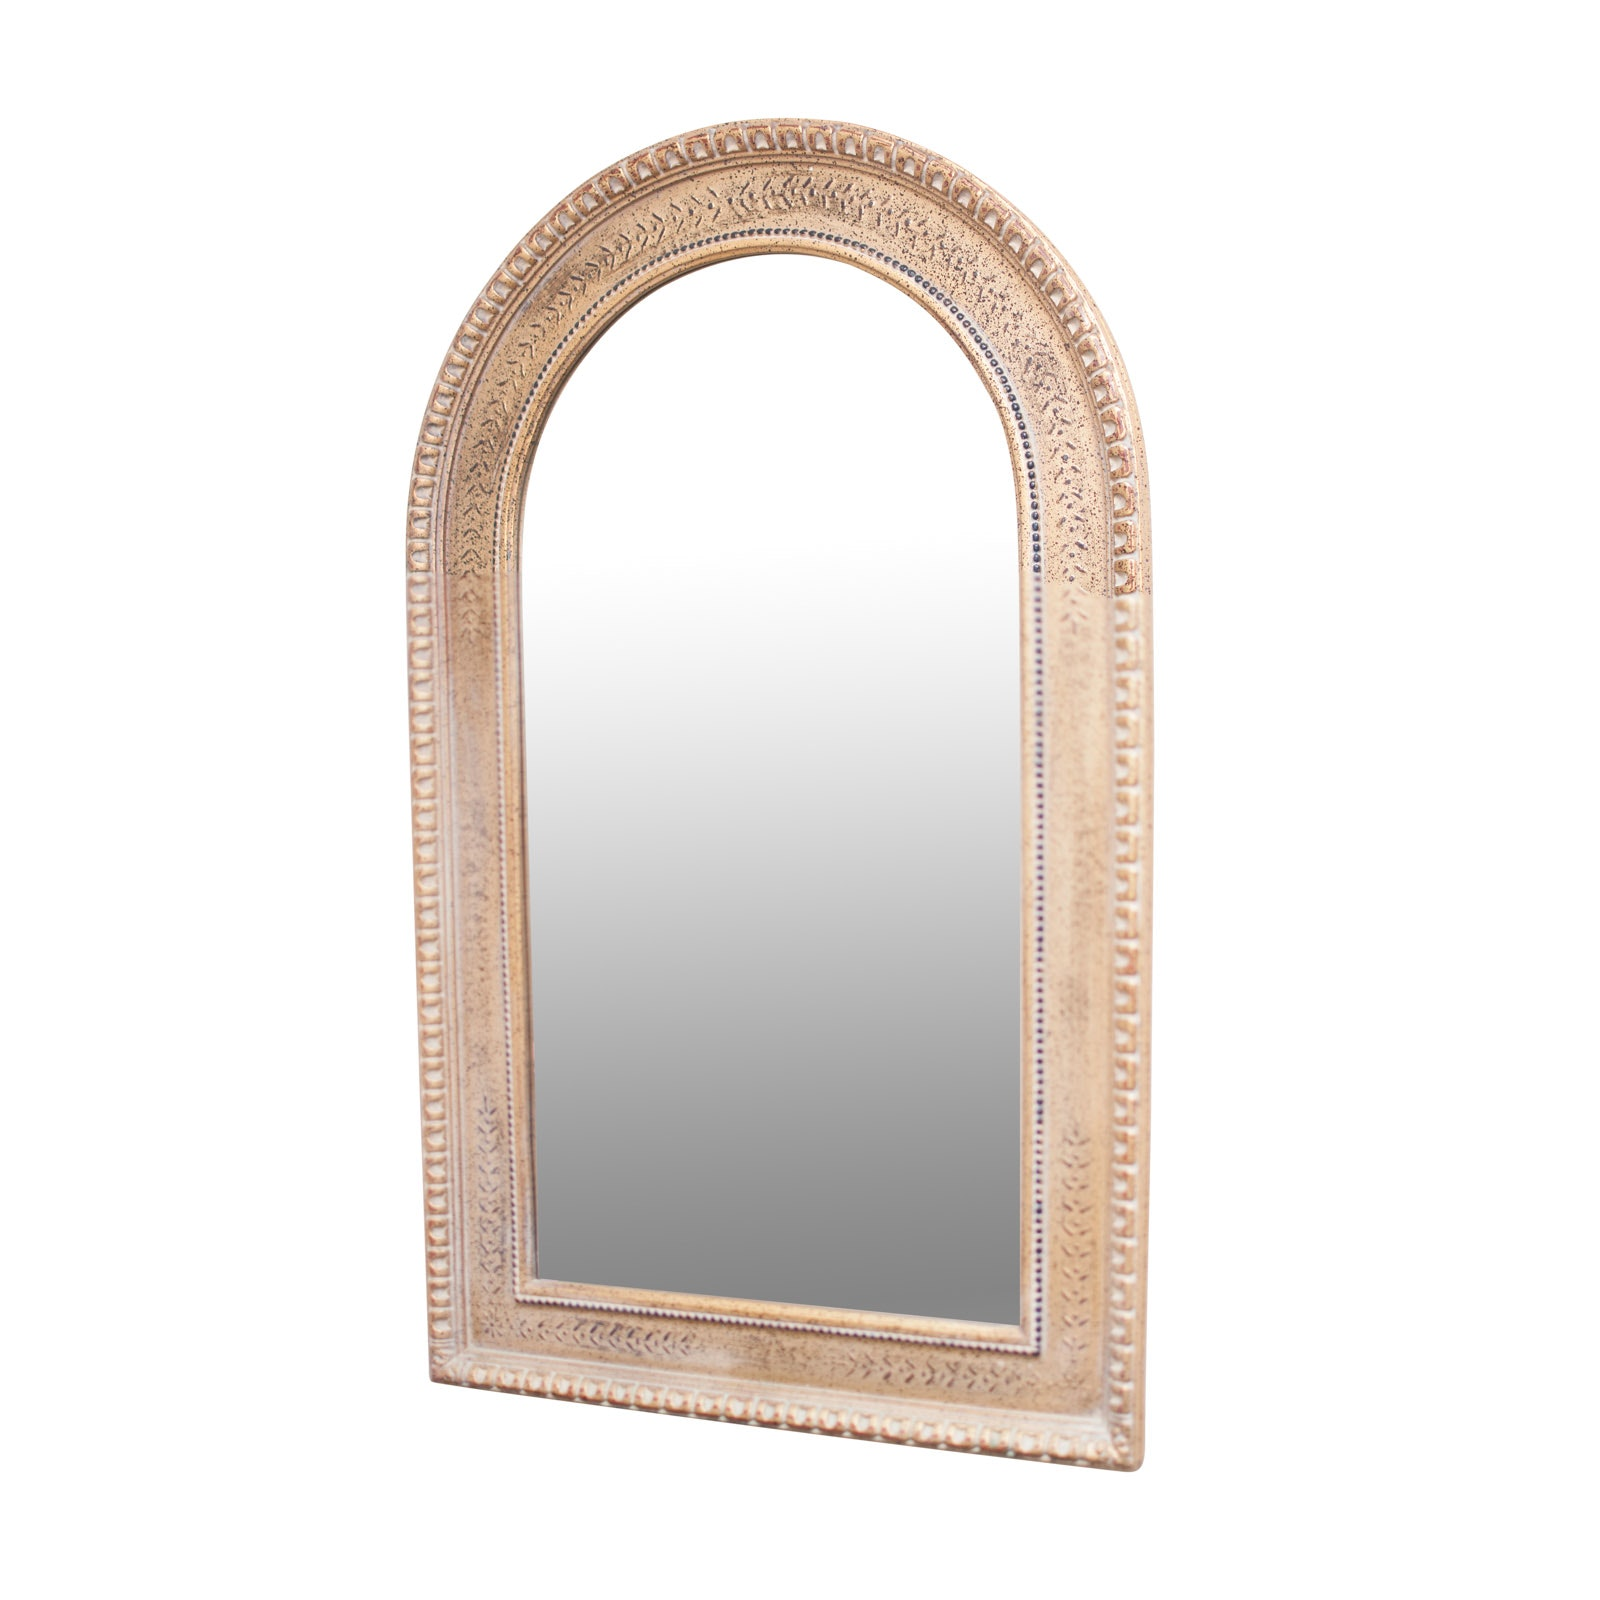 Arched Giltwood Beveled Edge Wall Mirror by The Uttermost Company